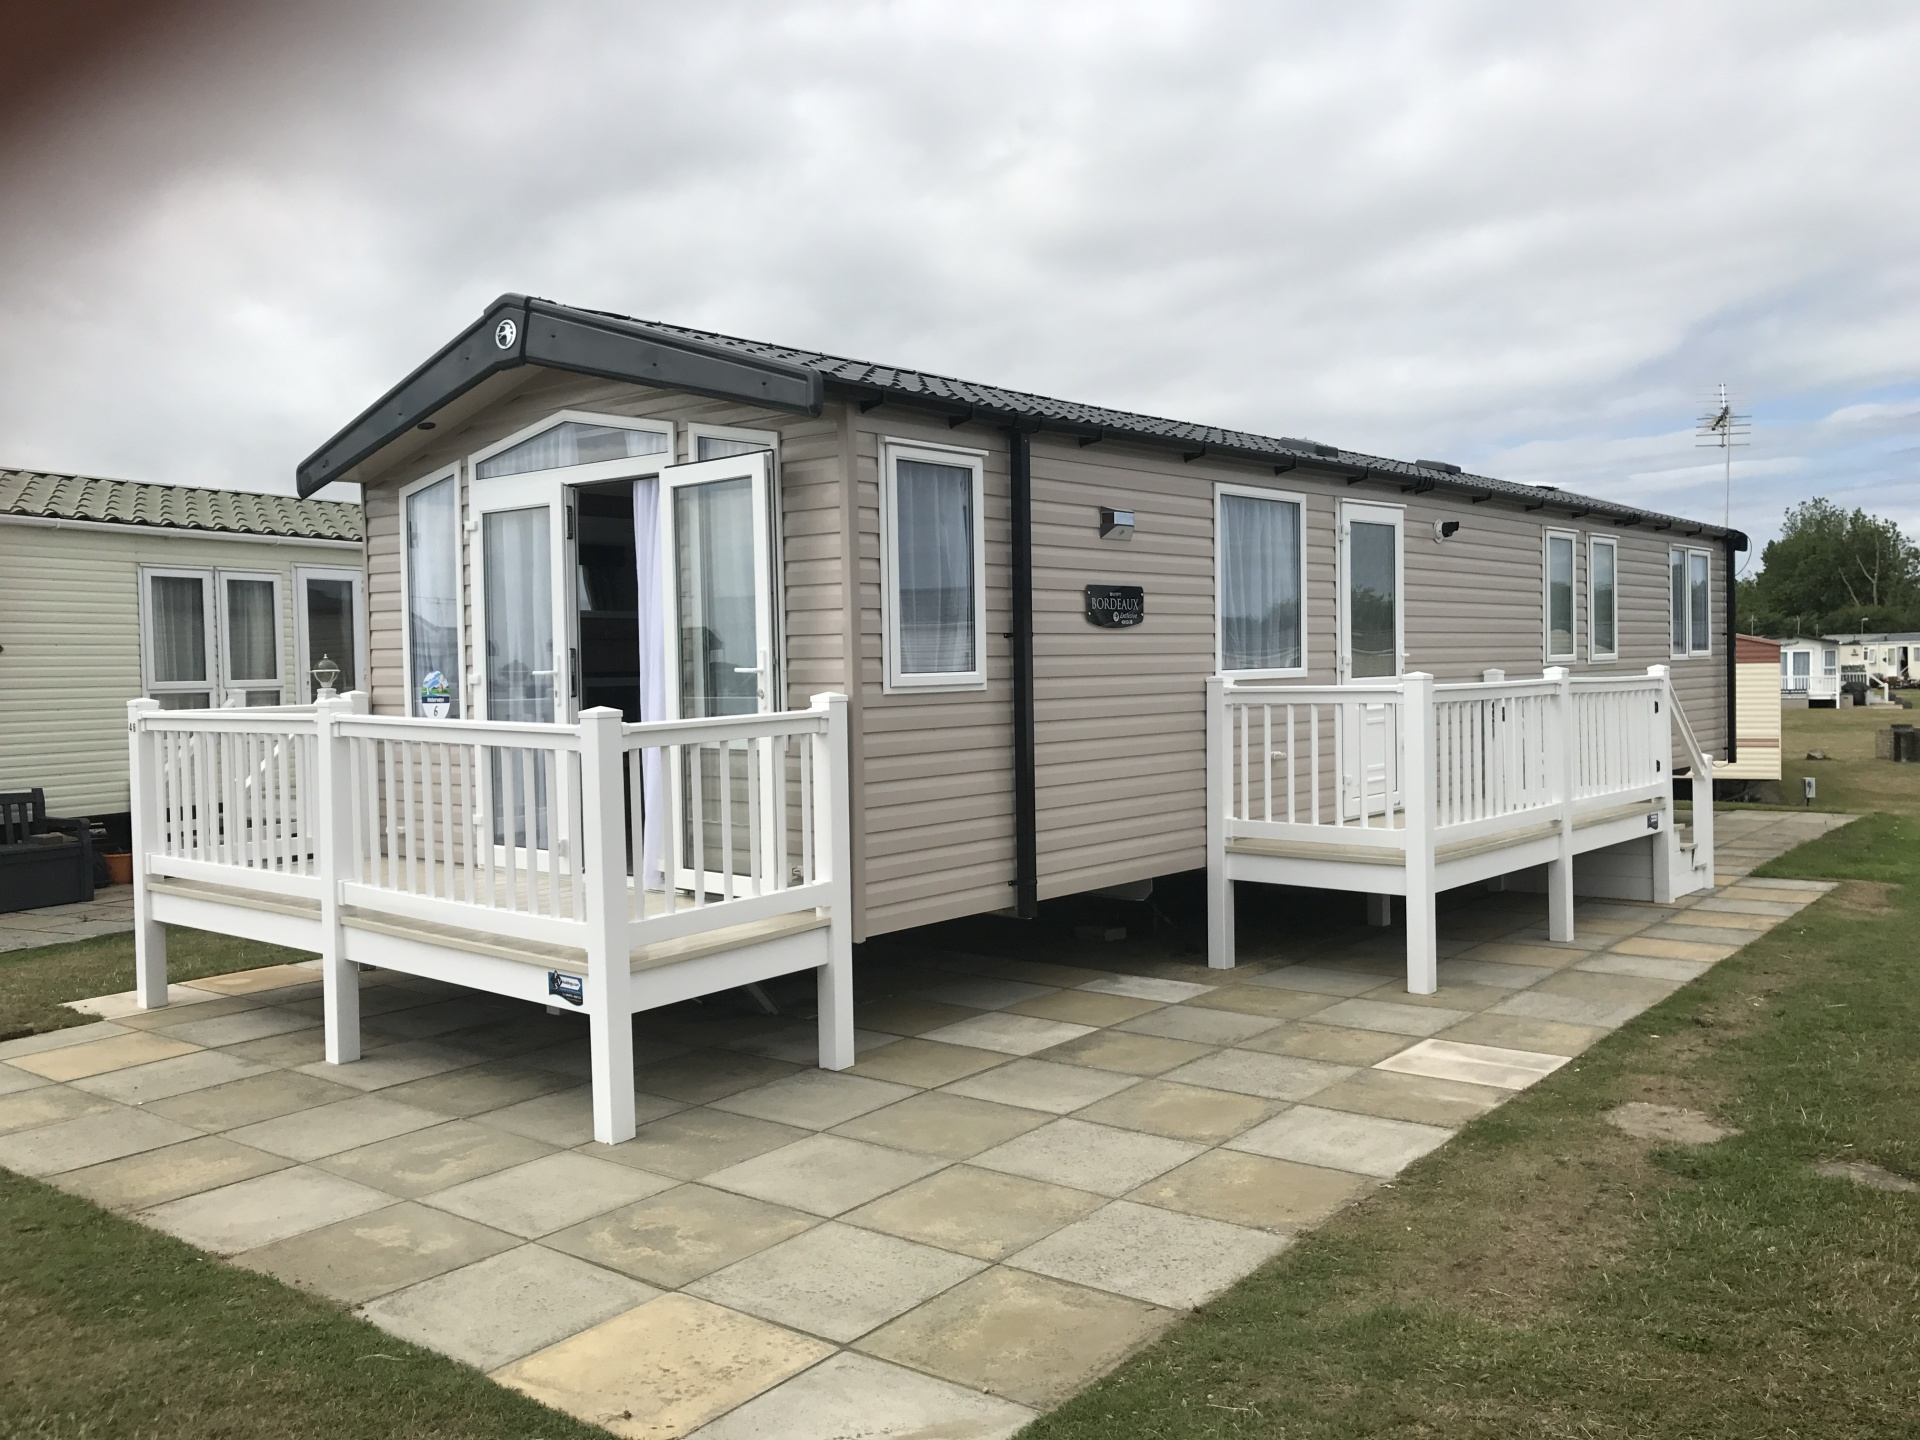 Waterways 6 - Haven Hopton Holiday Village - Waters' Retreats @Hopton